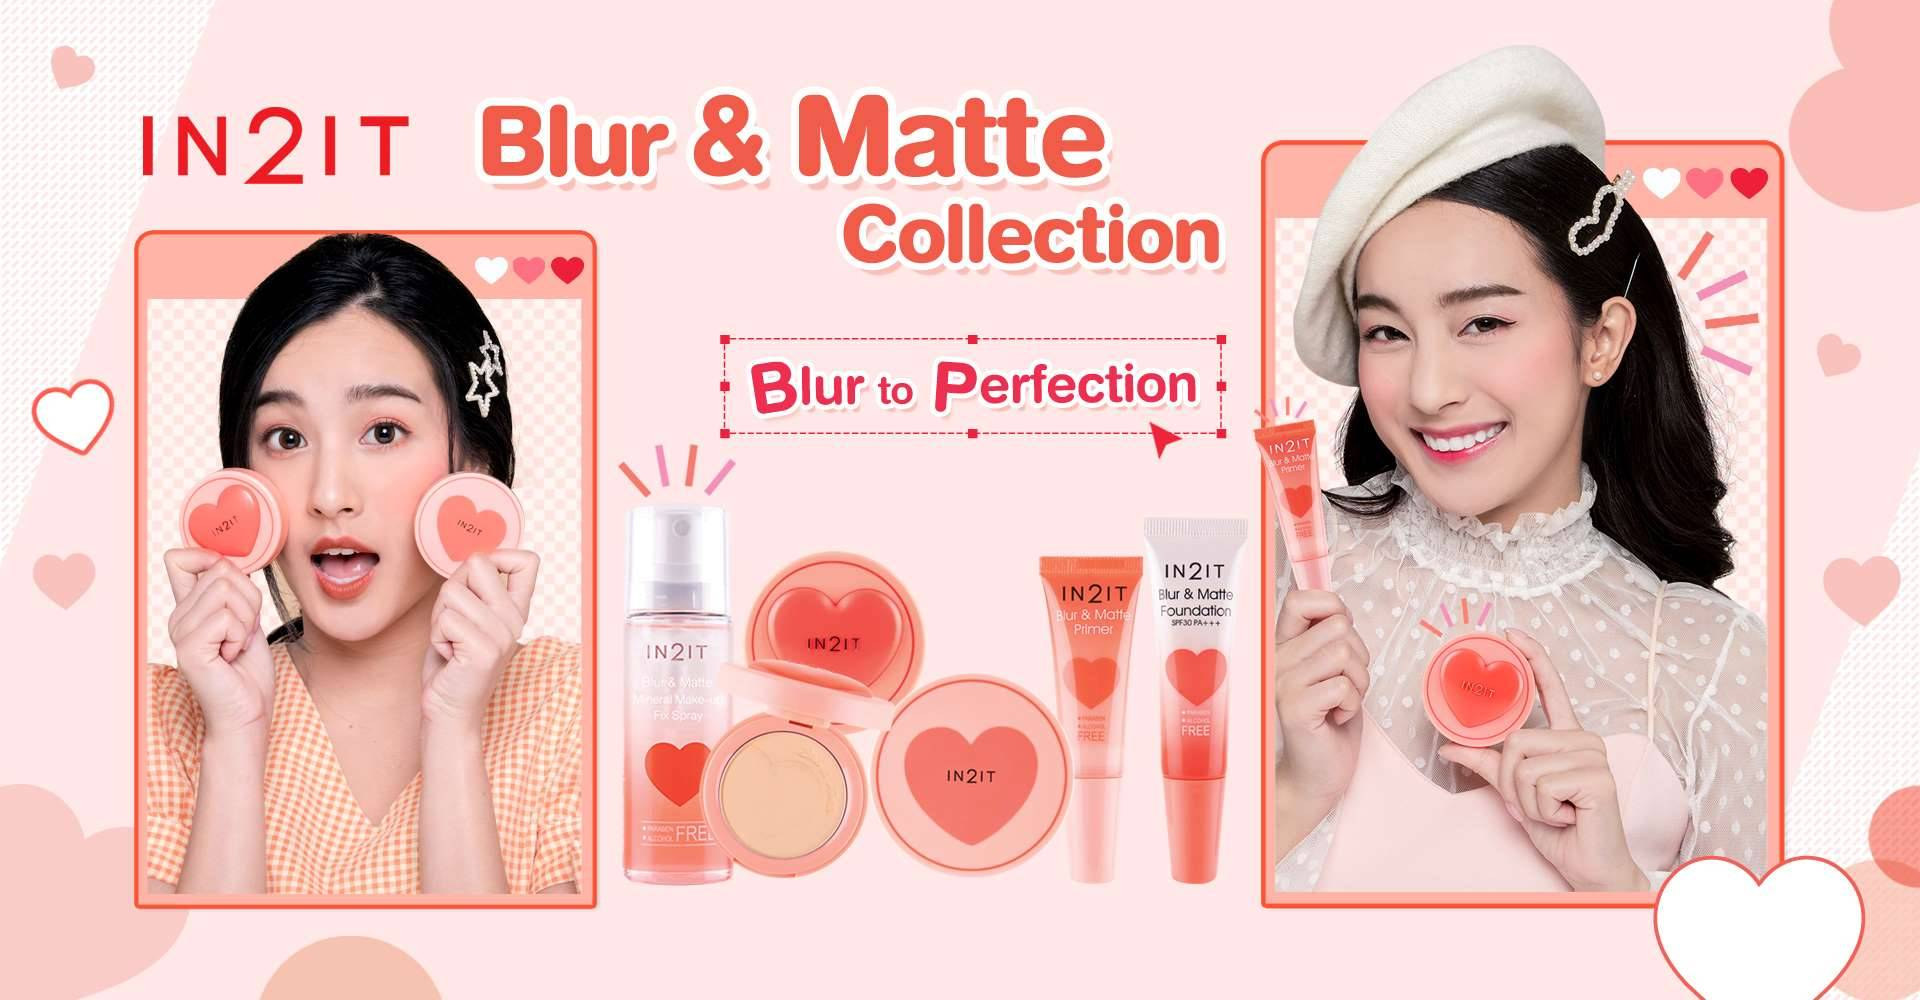 Blur and Matte Collection